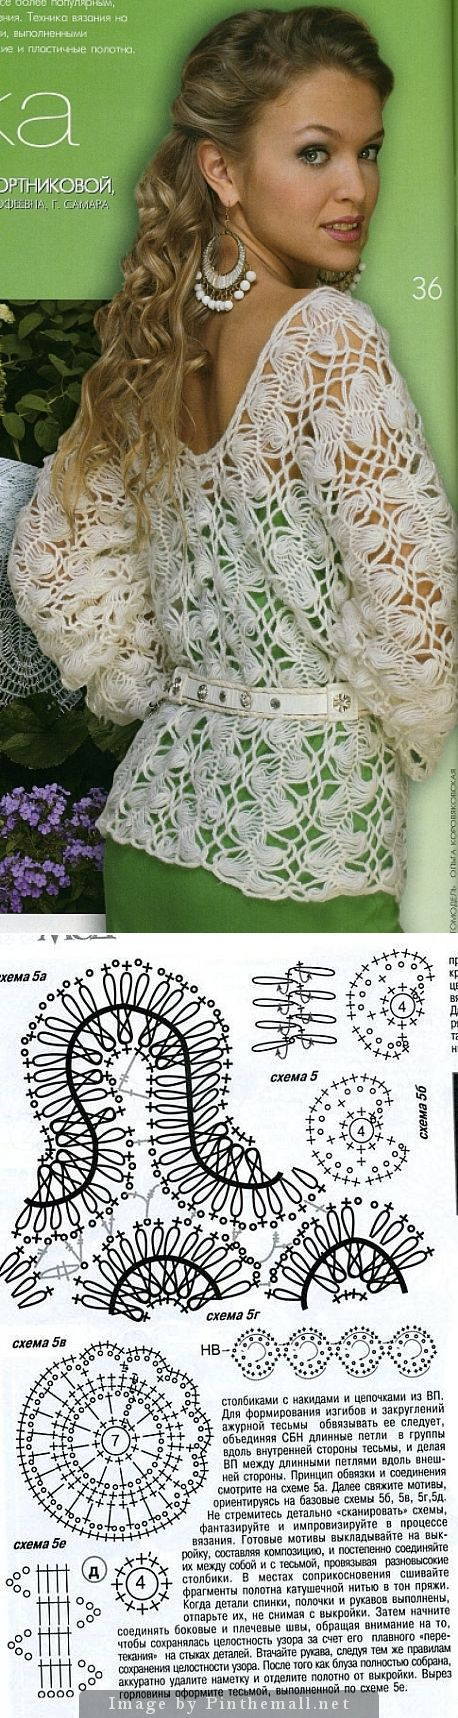 "#Crochet_Tutorial - ""This gorgeous Hairpin Lace crochet top is from one of those Russian sites that unfortunately often become blocked, so I've included the graphics that came with this. They are a good starting point for experimenting with this beautiful style."" 4U from #KnittingGuru ** http://www.KnittingGuru.etsy.com"